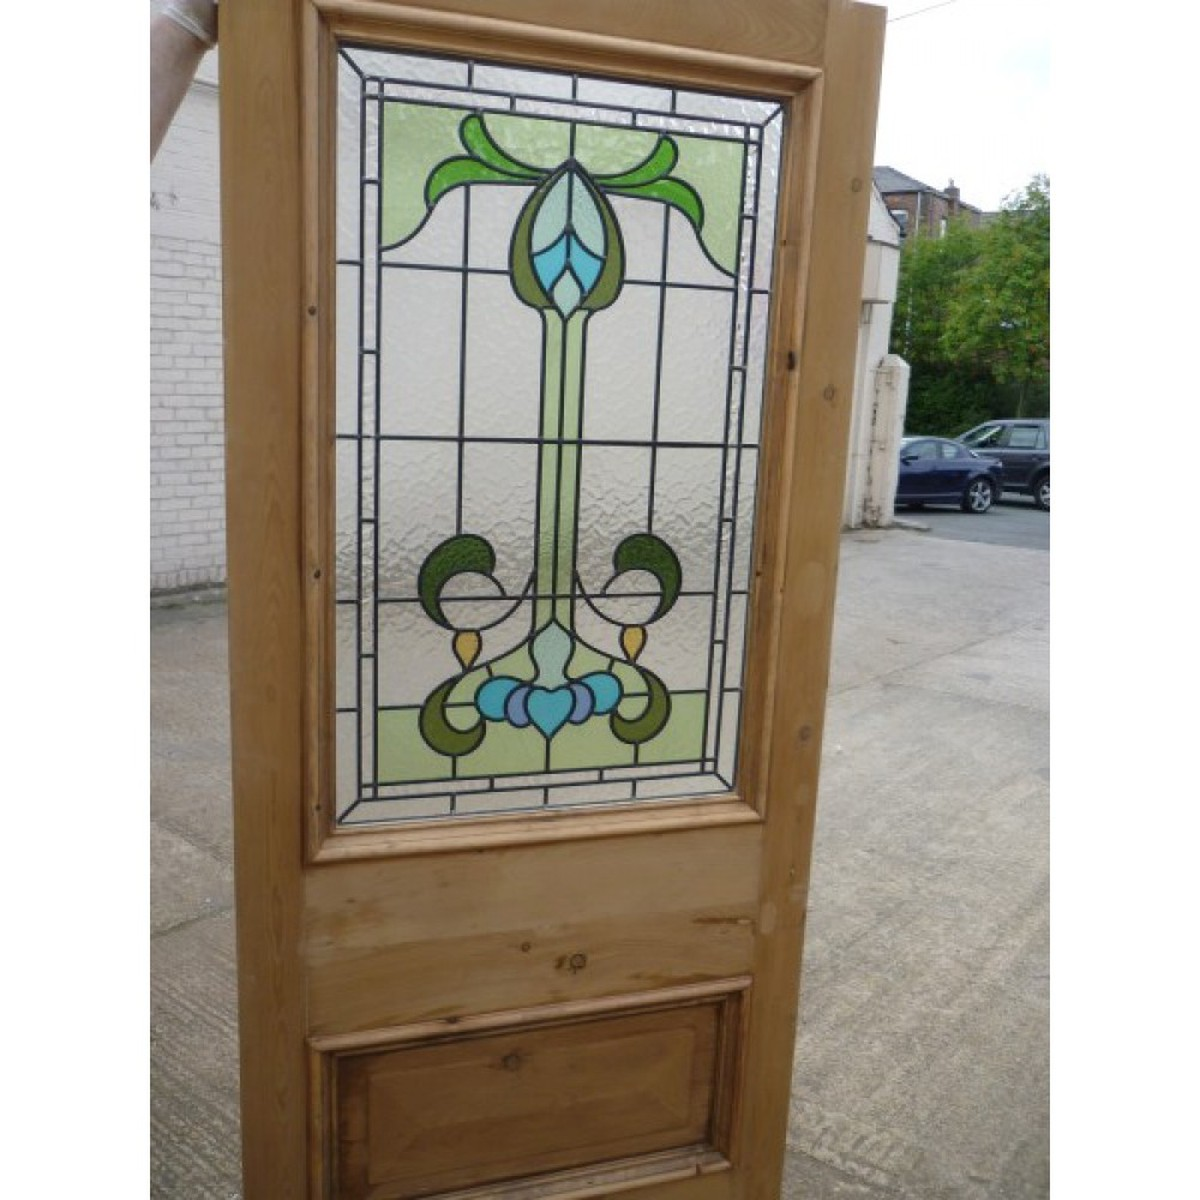 Victorian Glass stained door for sale ...  sc 1 st  Secondhand Vintage and Reclaimed & Secondhand Vintage and Reclaimed | Doors and Windows | Victorian ...